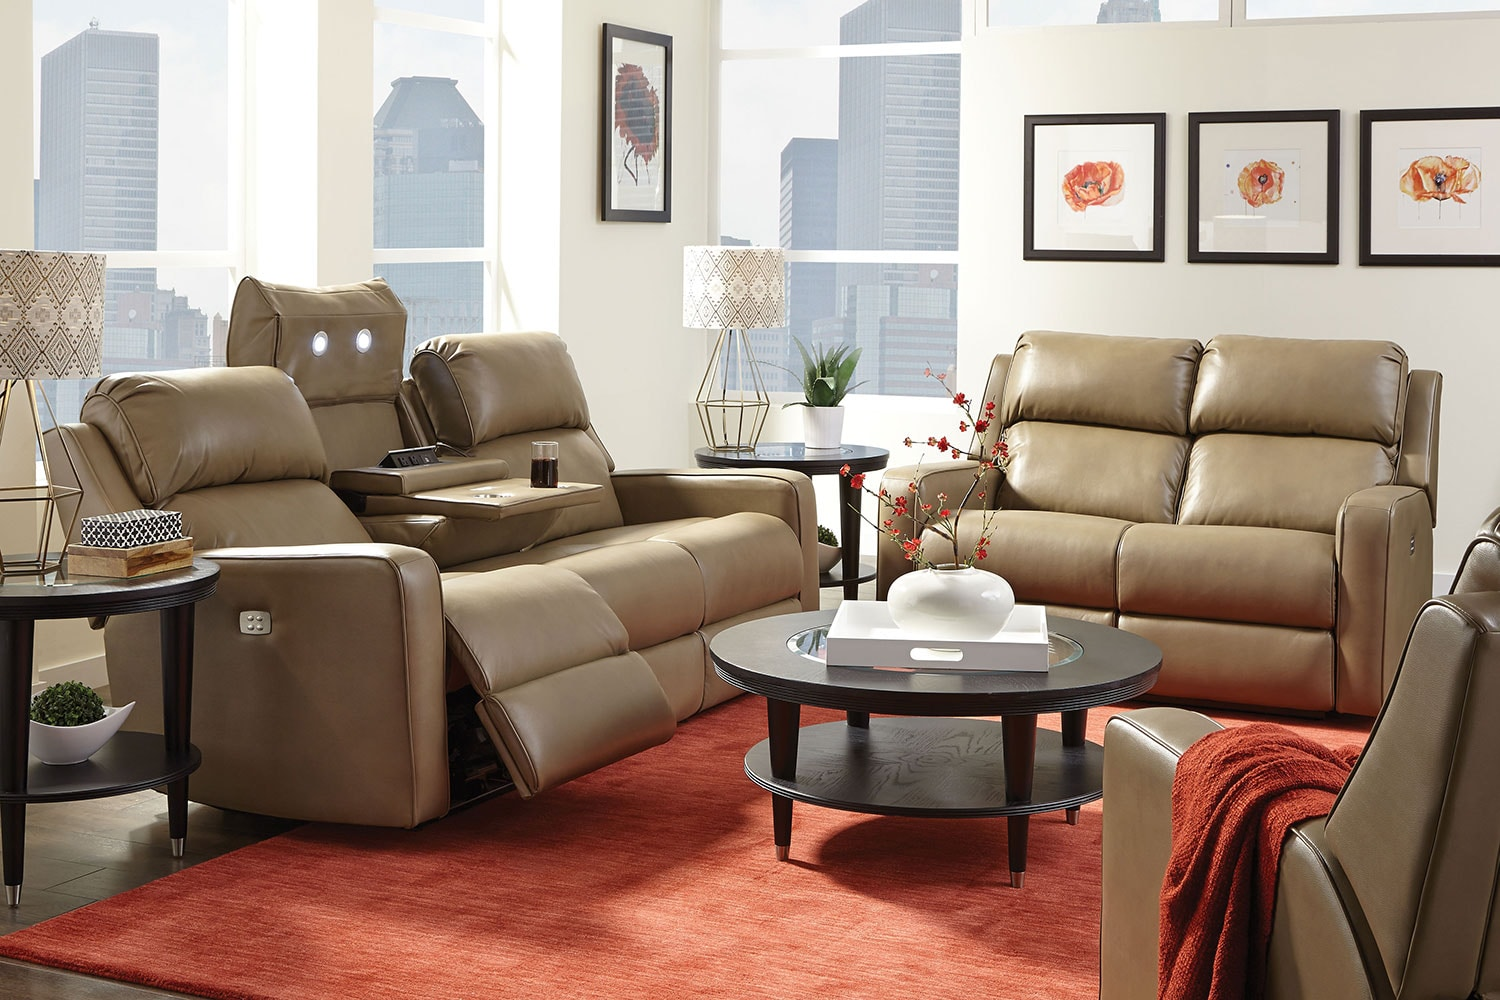 Escalade power reclining loveseat sand levin furniture for Levin furniture living room sets